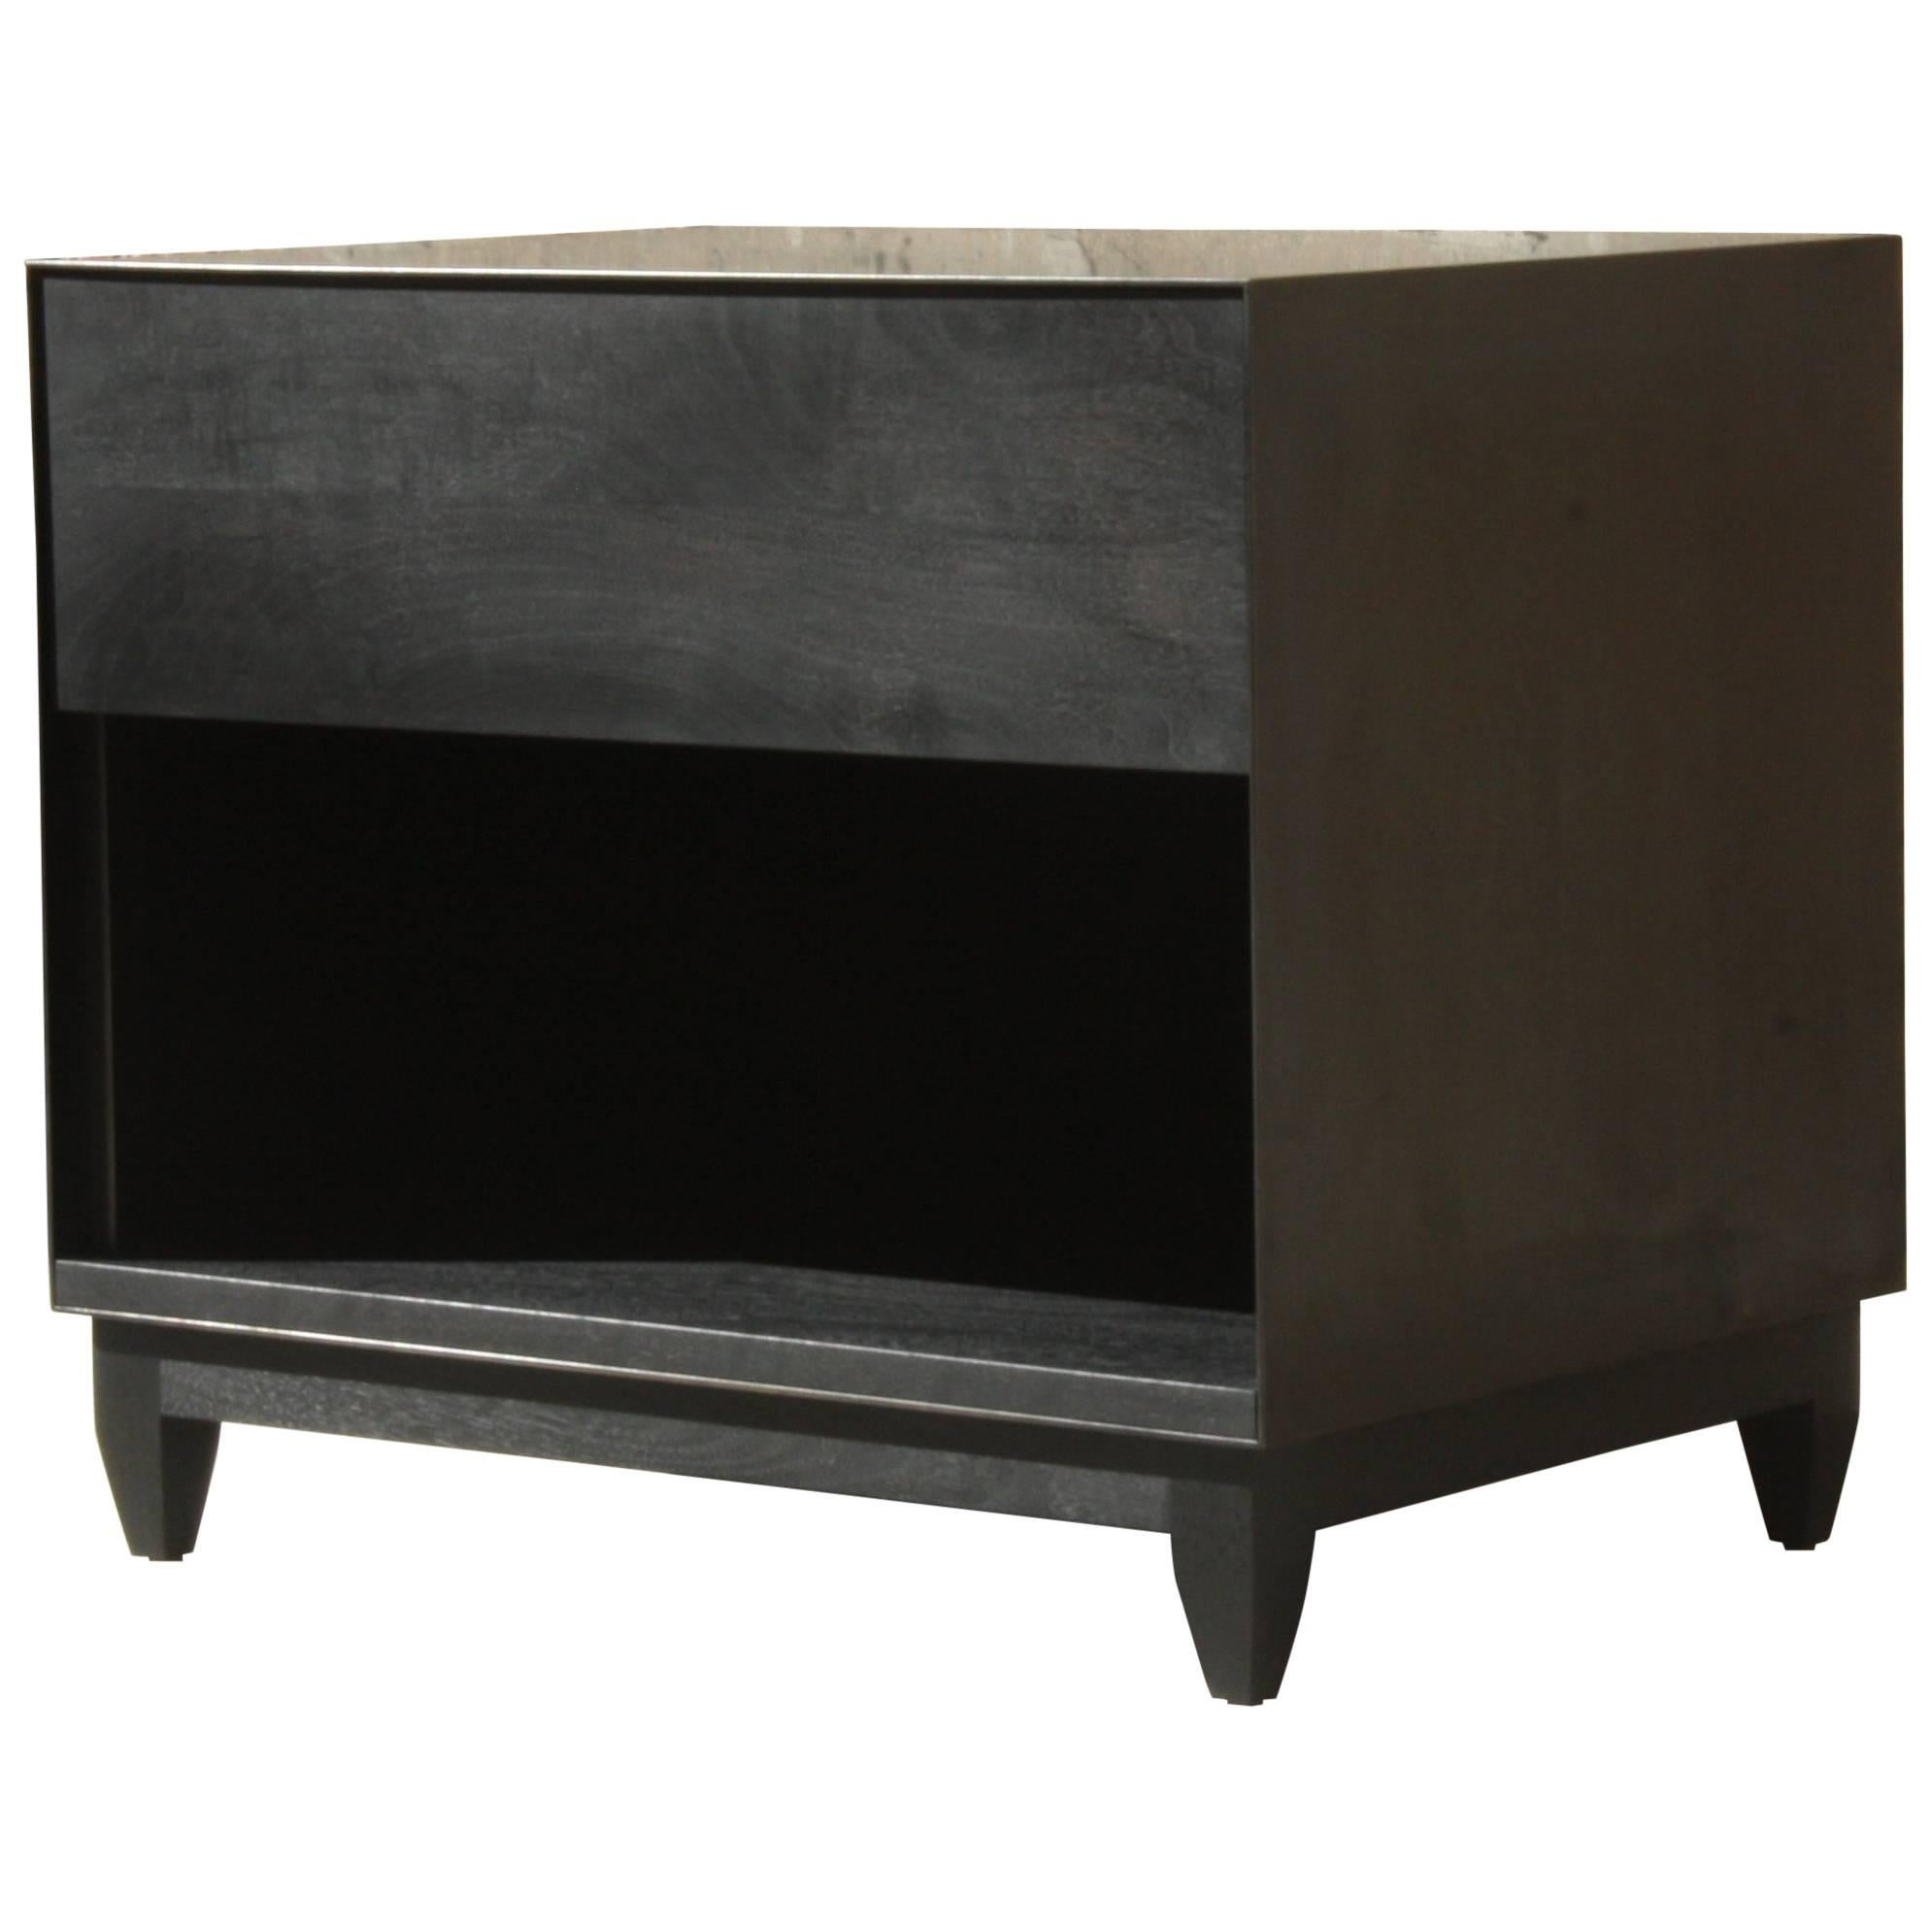 Oxide, Handmade Nightstand Or Contemporary Side Table   Blackened Steel And  Wood For Sale